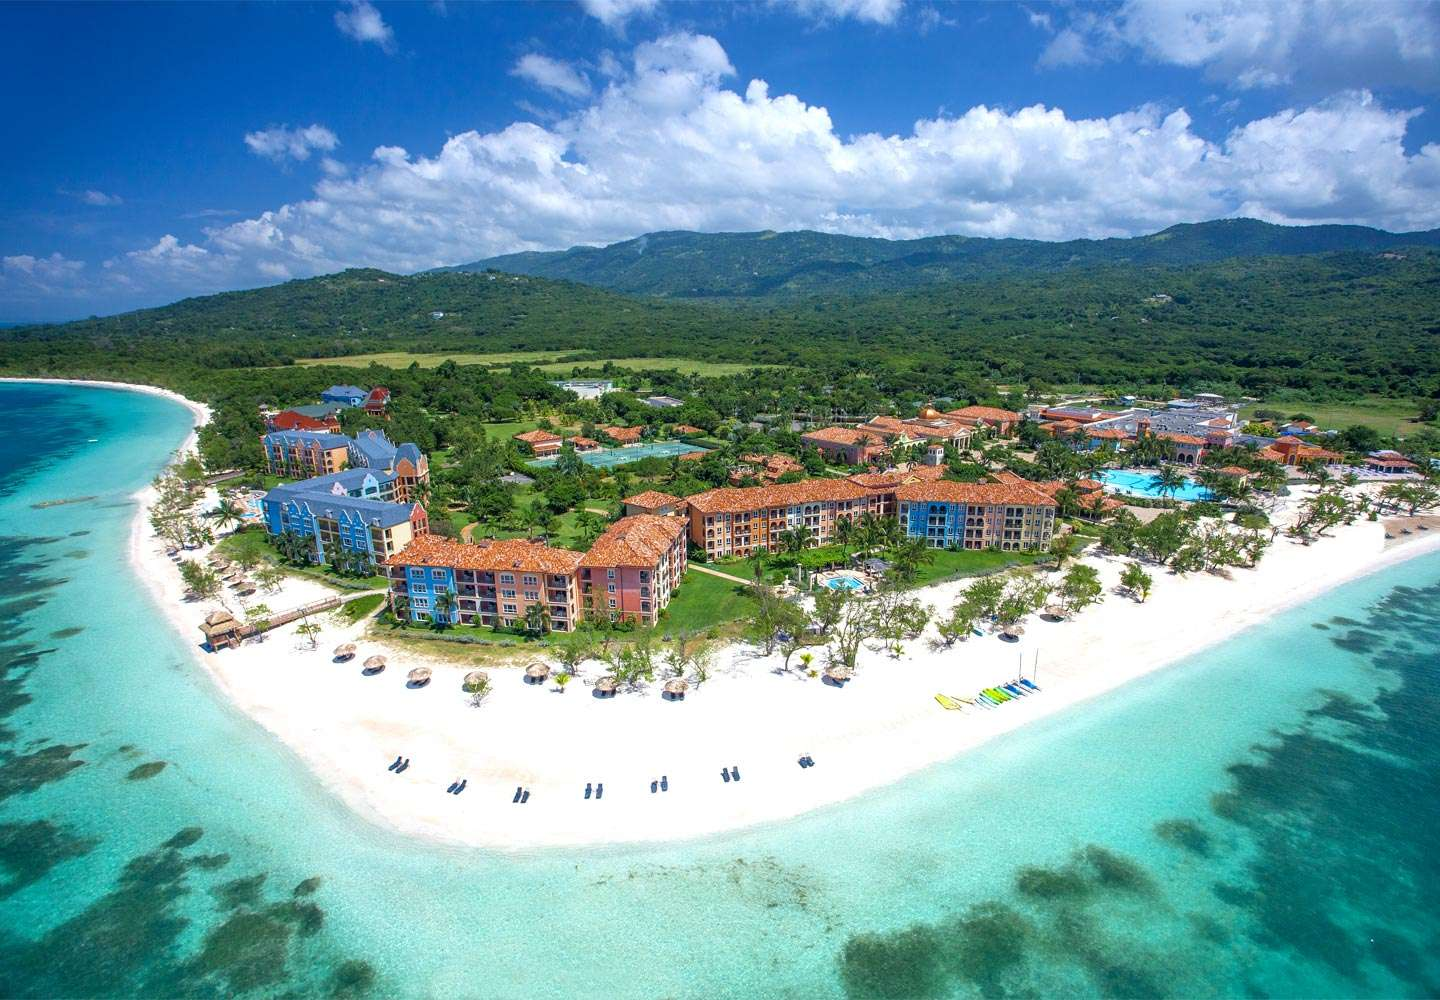 Image of Sandals South Coast, Westmoreland, Jamaica